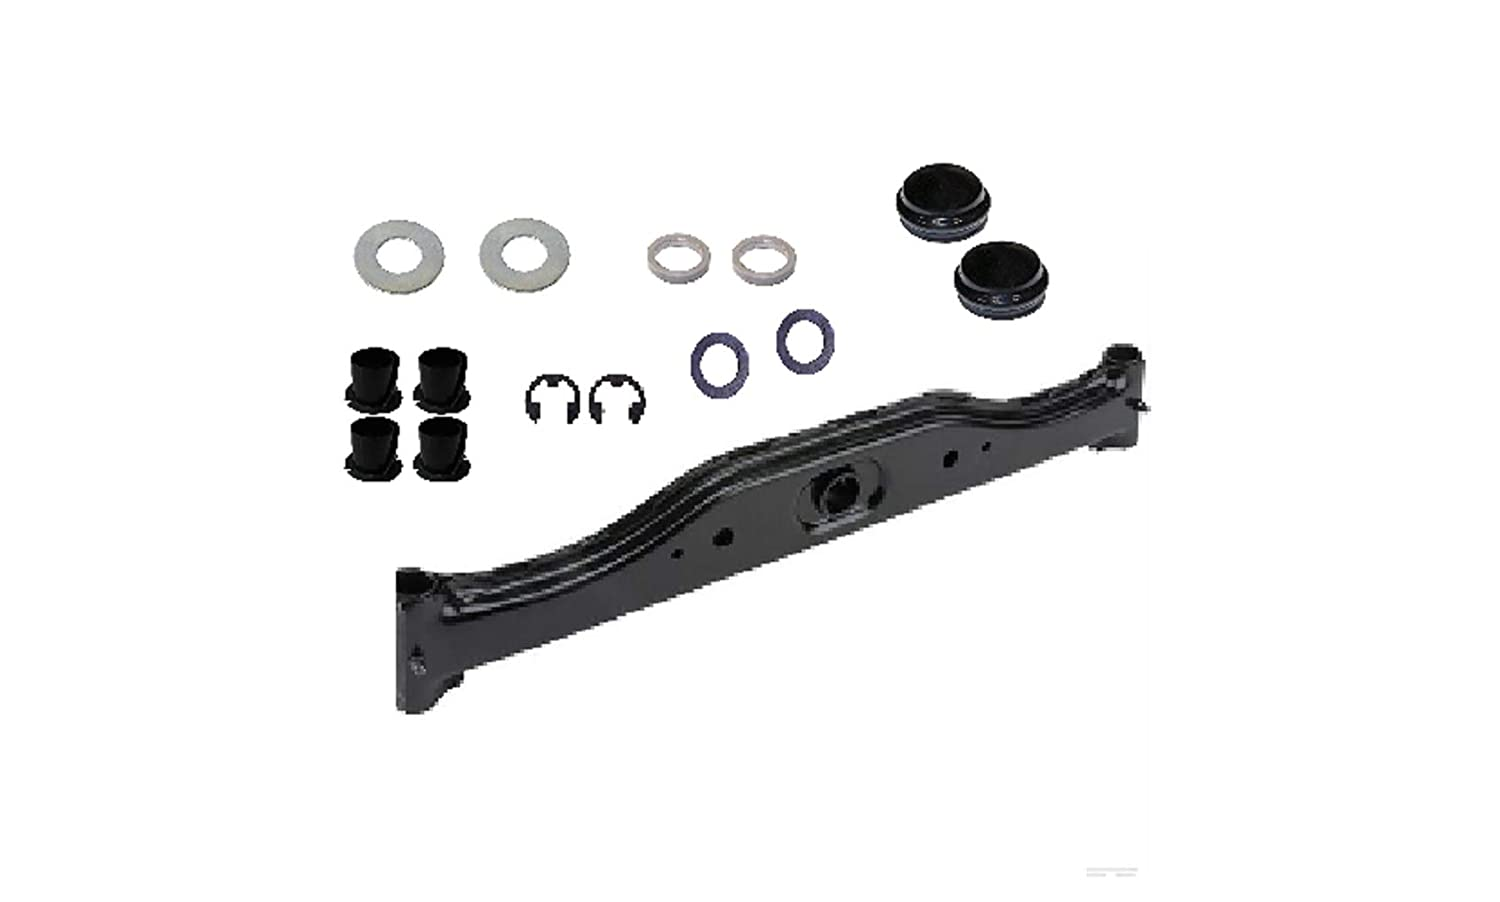 Craftsman 532418168 Front Axle Kit,(1) 532418168 axle,(4) 532003366 bearings (2) 532121748 washers,(2) 812000029 ring clips,(2) 819272016 washers,(2) 532006266 thrust washers,(2) 532121232 caps